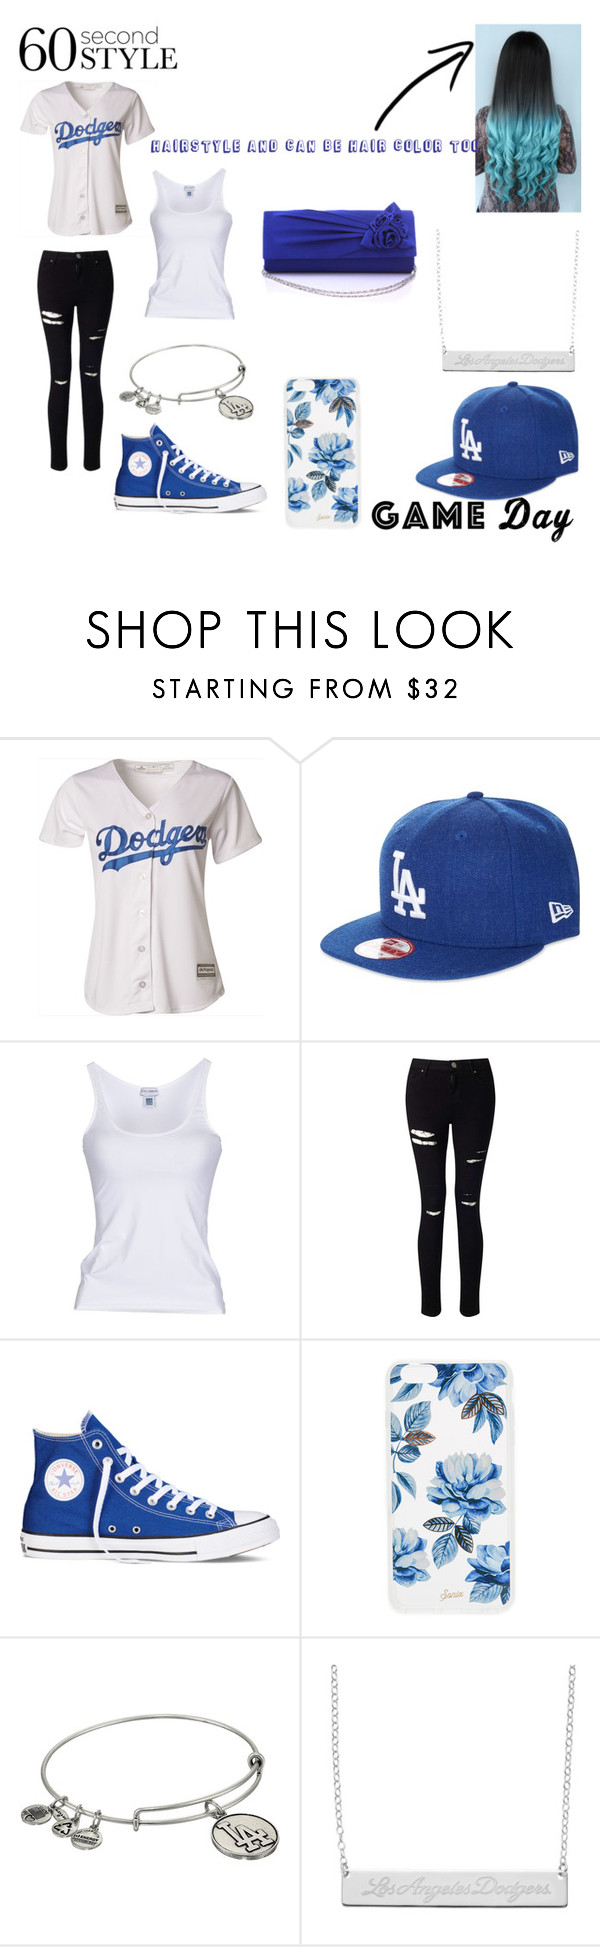 """""""Last 'Game Day' outfit"""" by marieangel26 ❤ liked on Polyvore featuring Majestic, New Era, Dolce&Gabbana, Miss Selfridge, Converse, Sonix and Alex and Ani"""